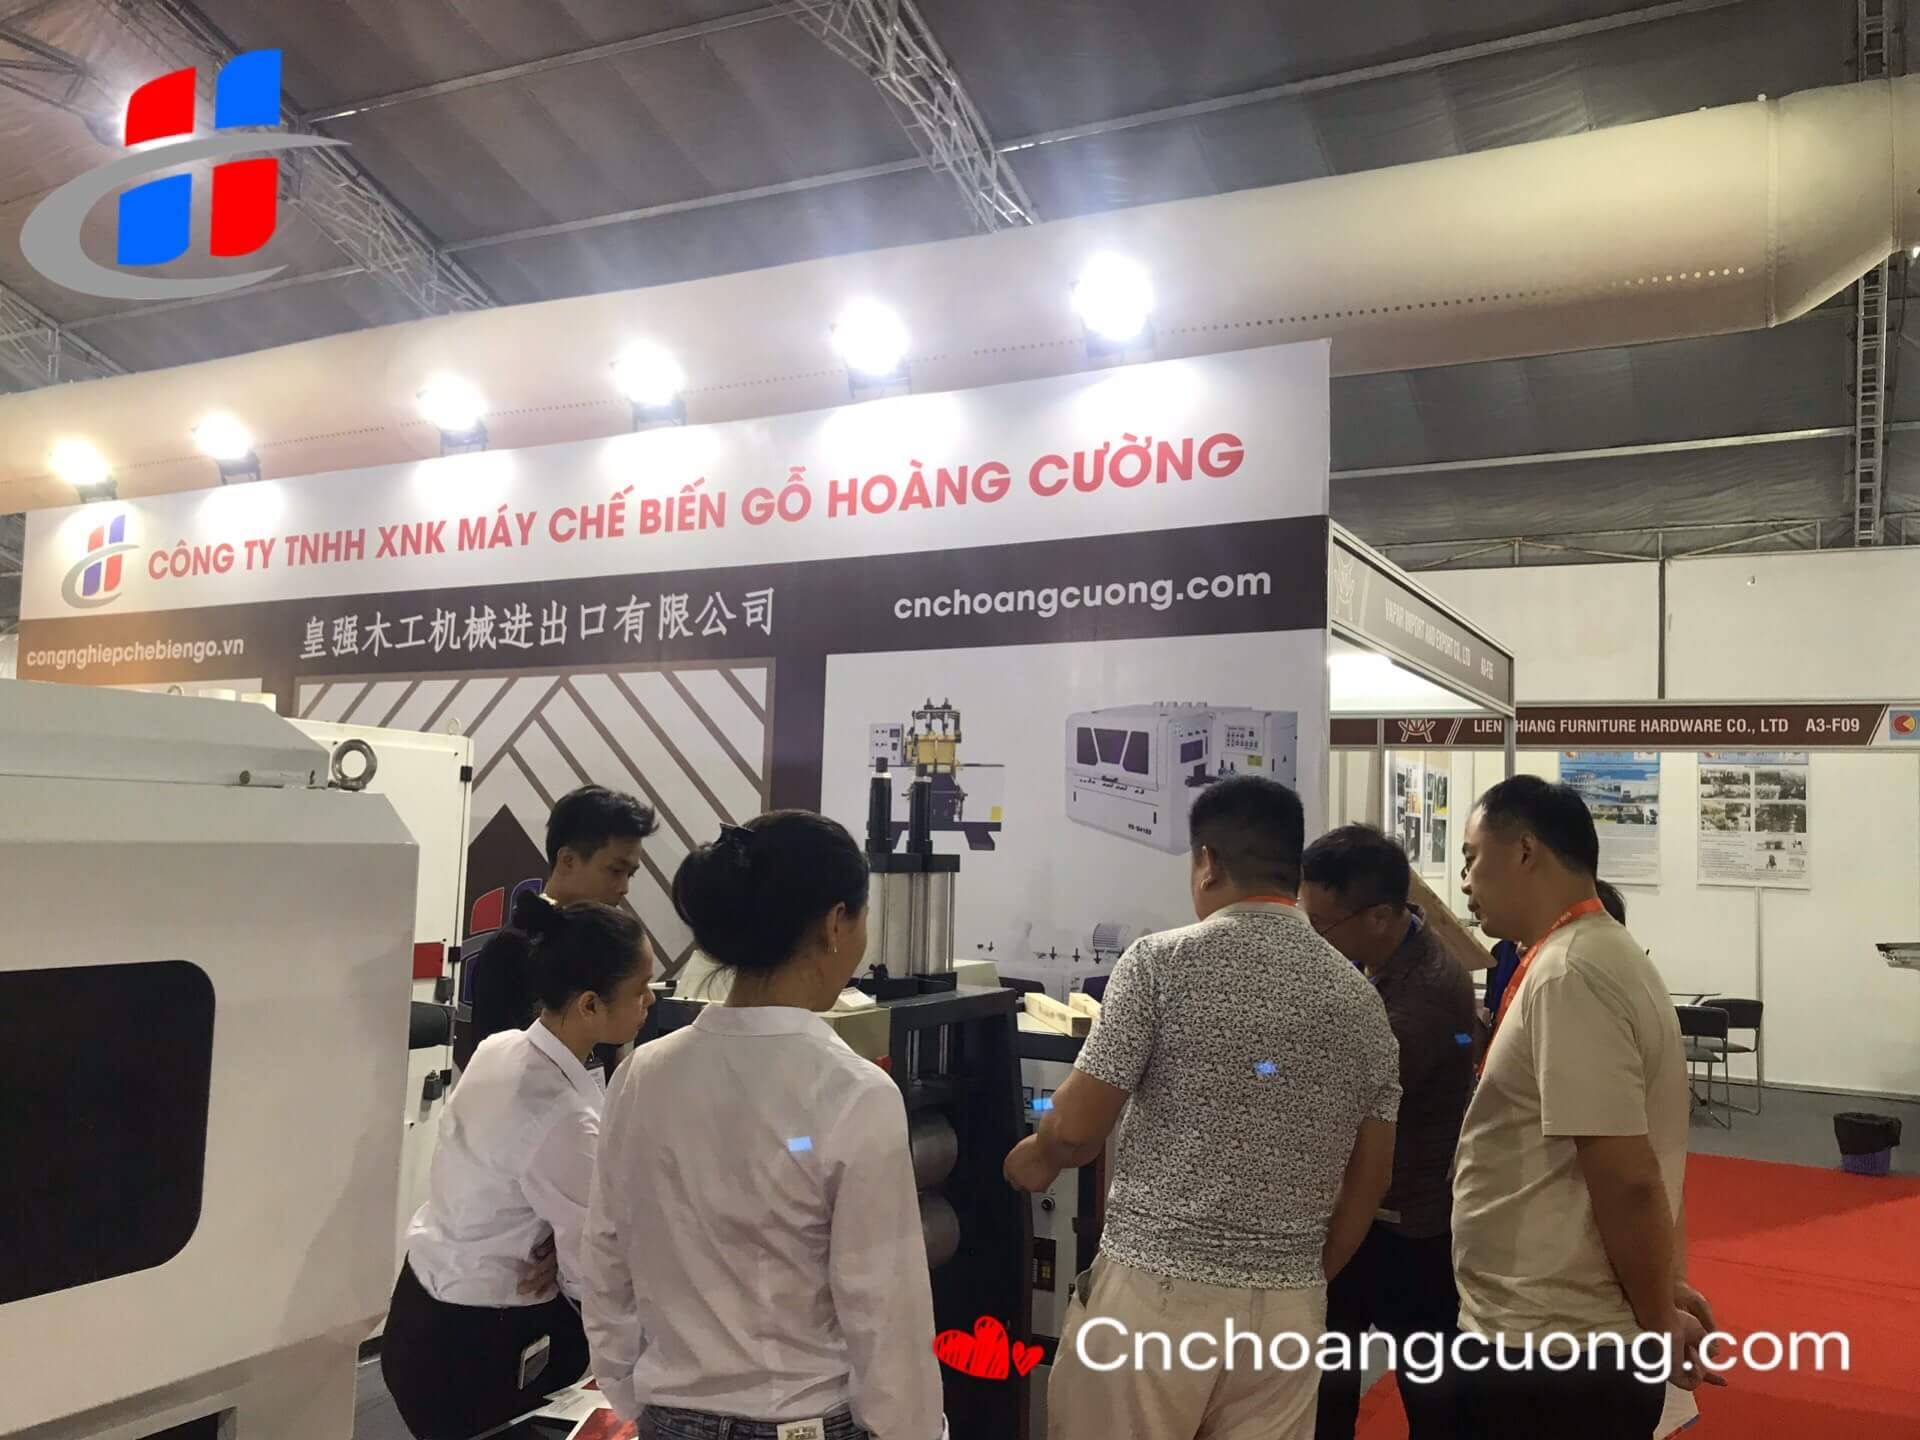 https://cnchoangcuong.com/?p=1750&preview=true